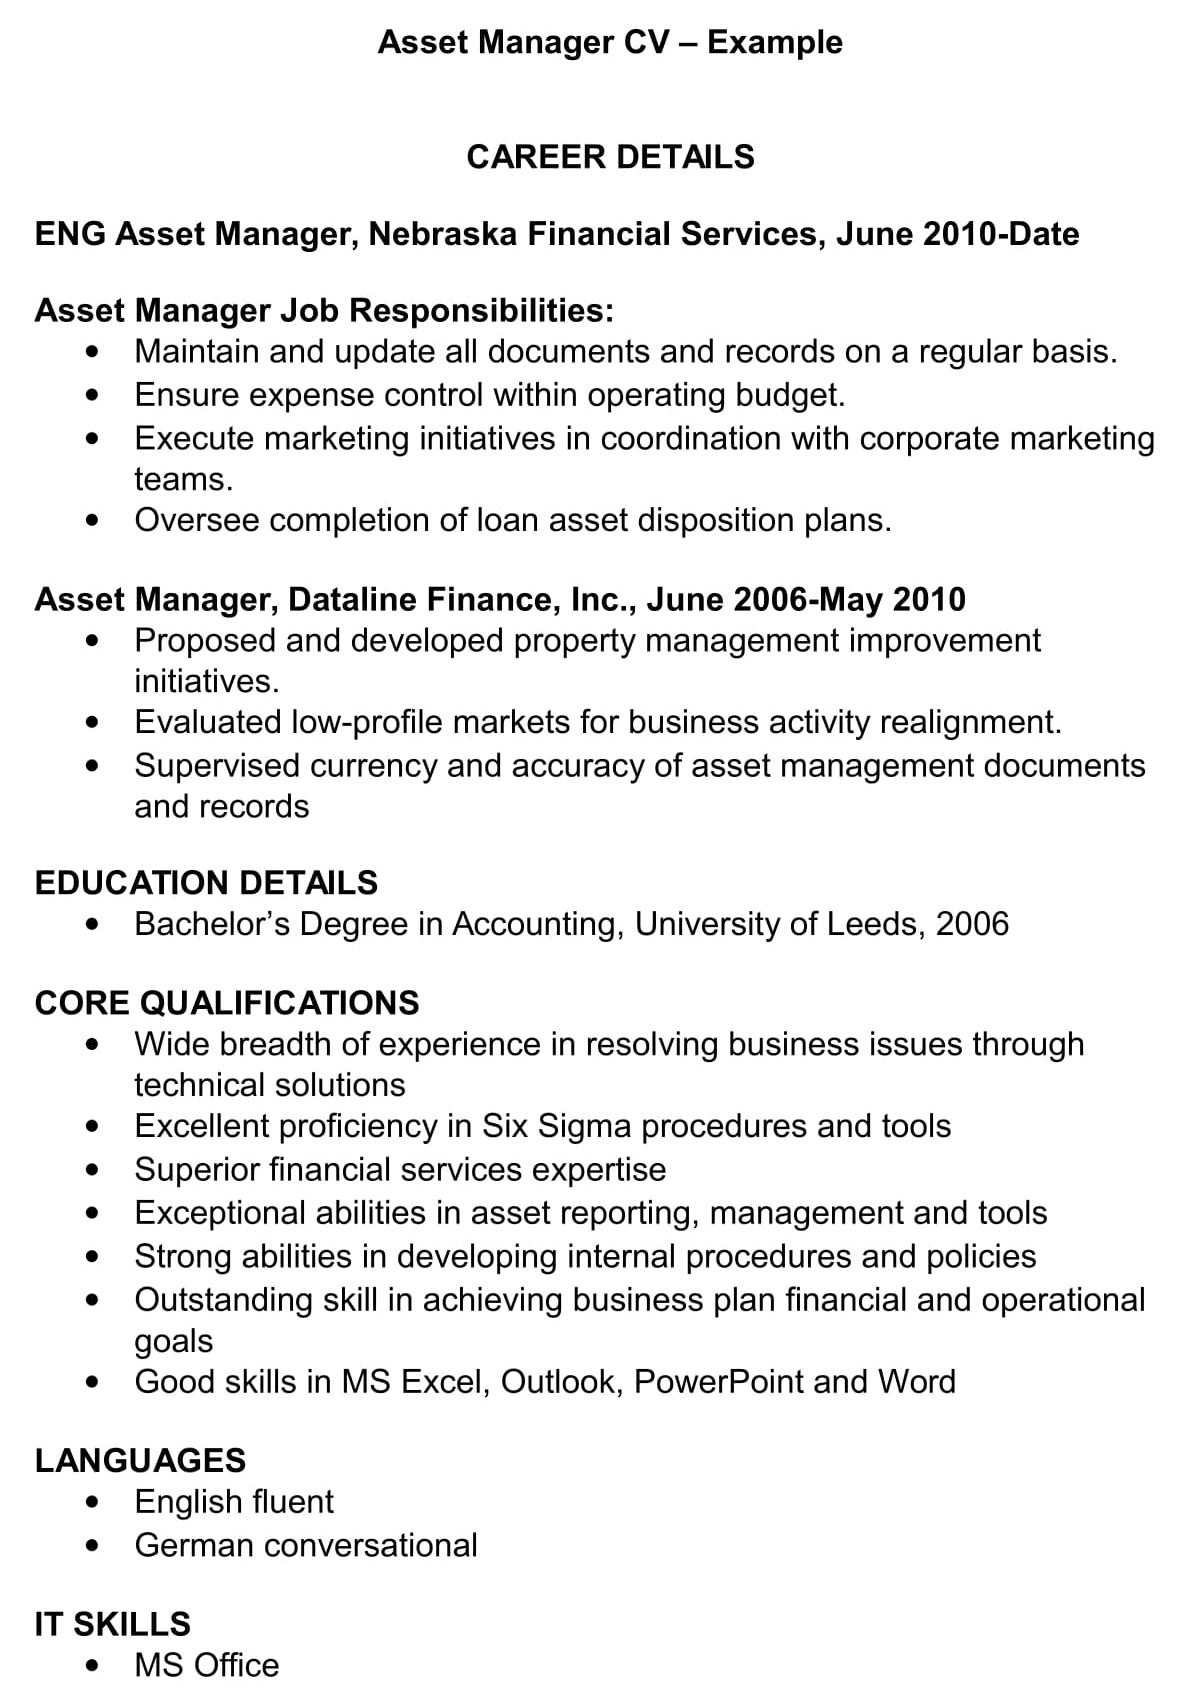 Manager Cv Template from www.renaix.com